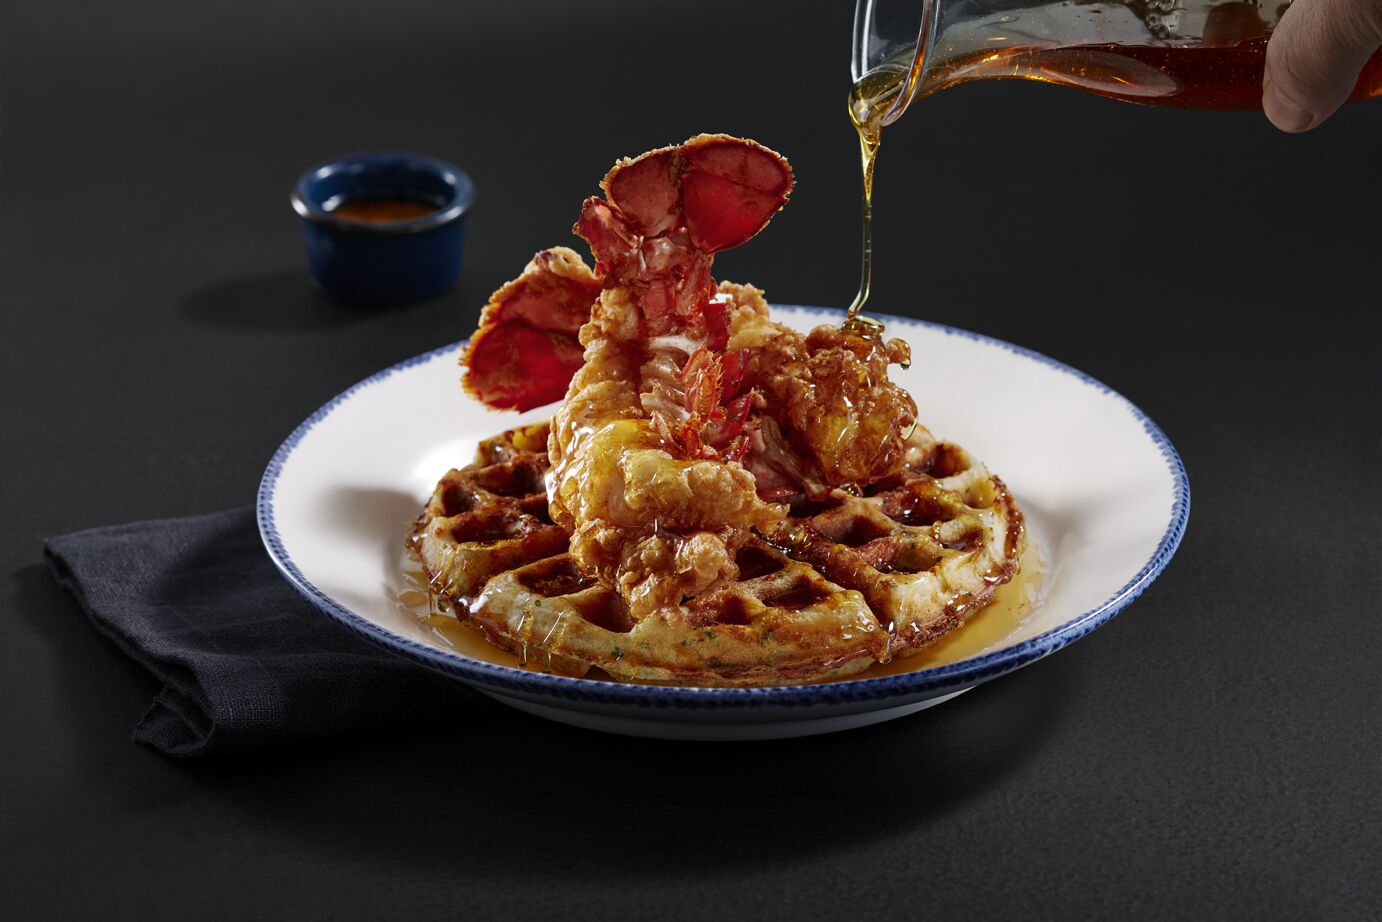 Red Lobster Food Hack: Recreate Cheddar Bay Biscuit Waffles at home